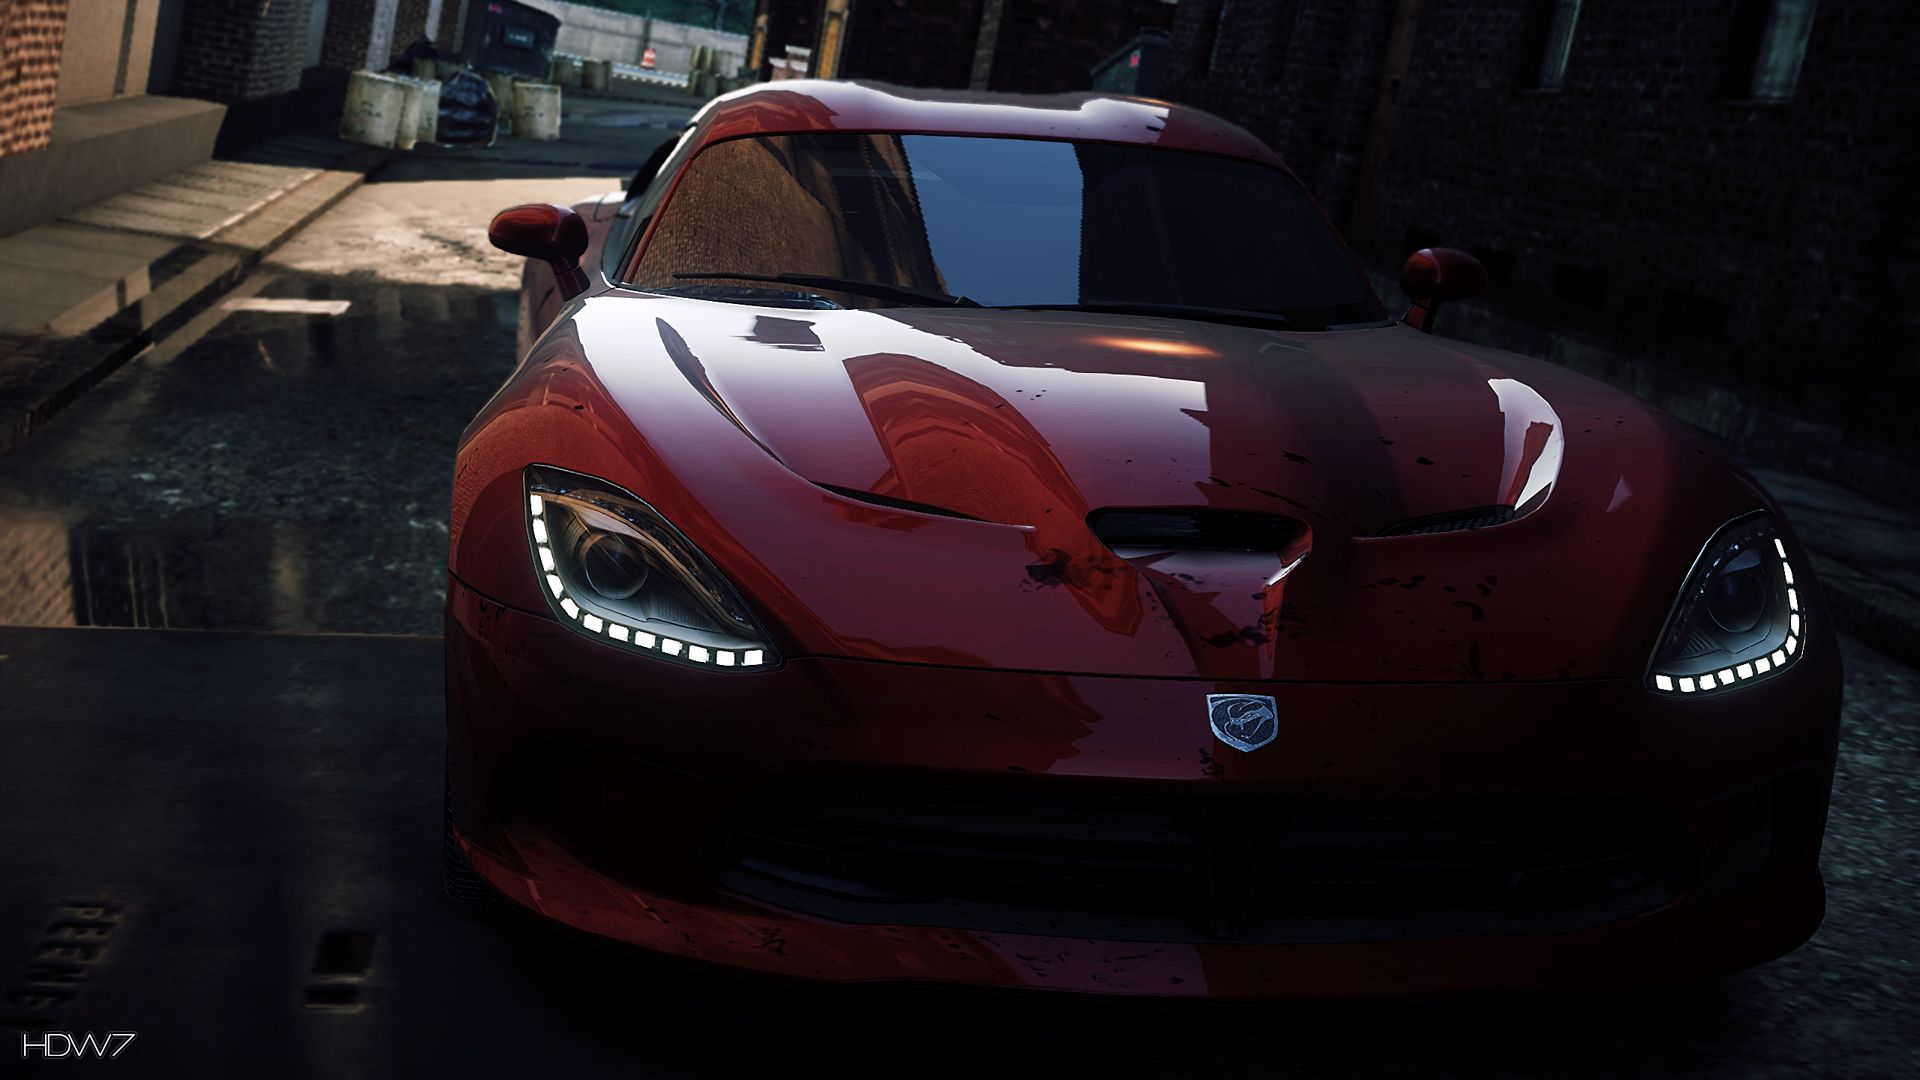 Need For Speed Most Wanted 2012 Srt Viper Gts Widescreen Hd Wallpaper